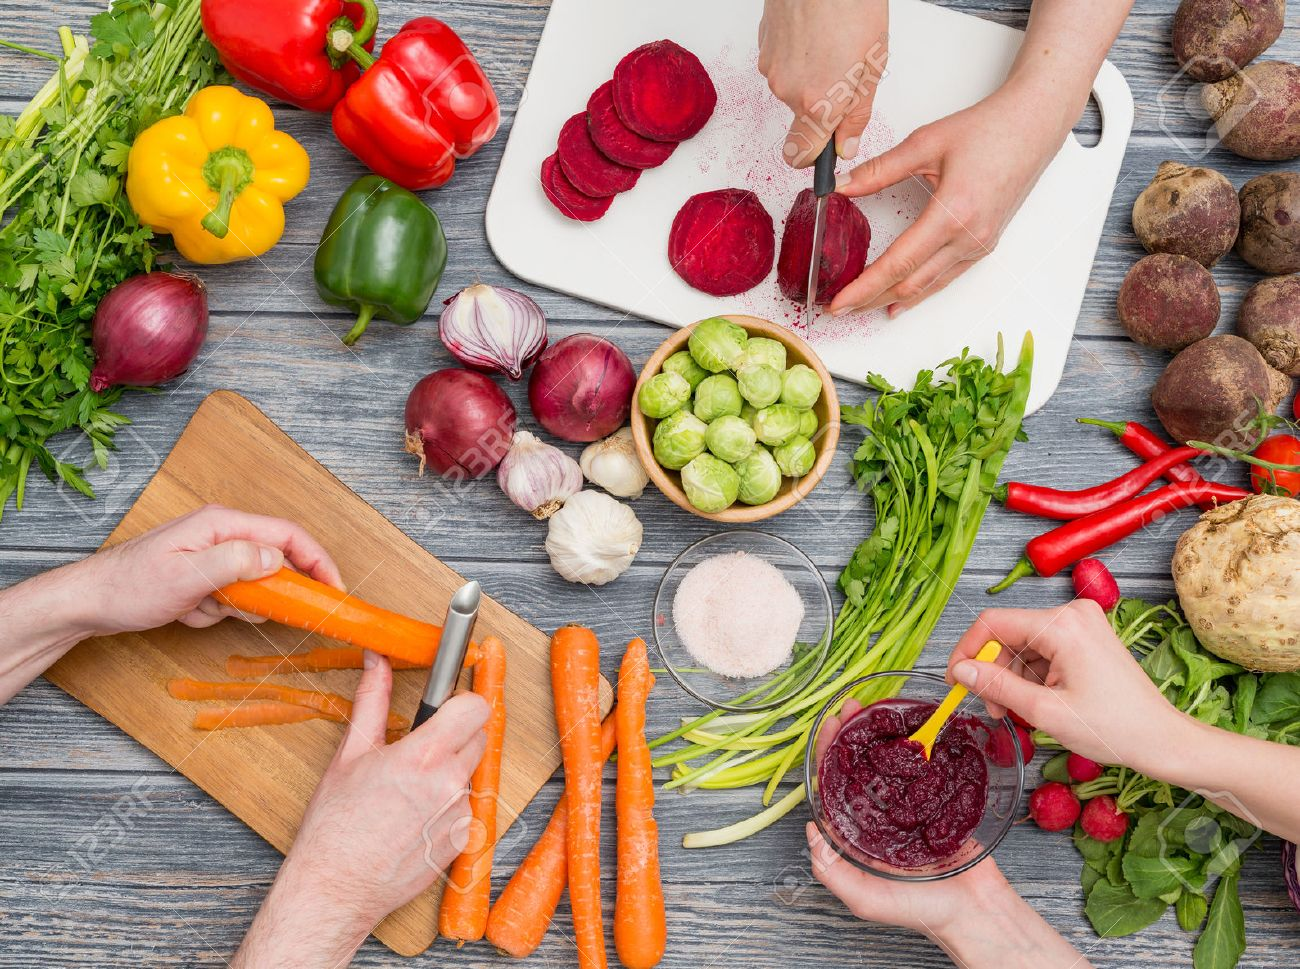 cooking food kitchen cutting cook hands man male knife preparation fresh preparing hand table salad concept - stock image - 72952395